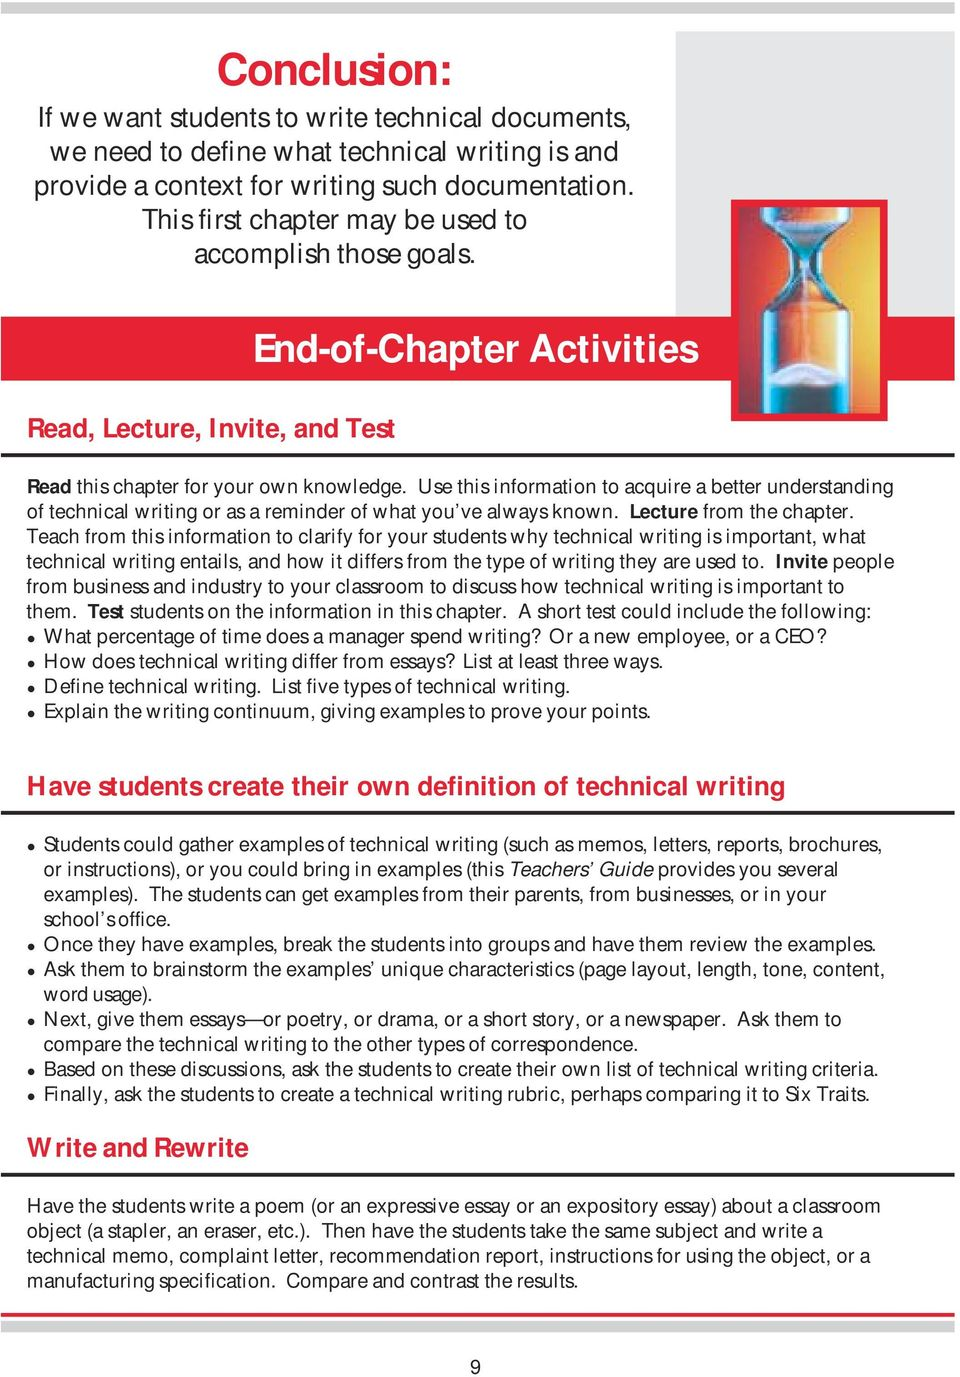 writing that works. a teacher s guide to technical writing. by dr